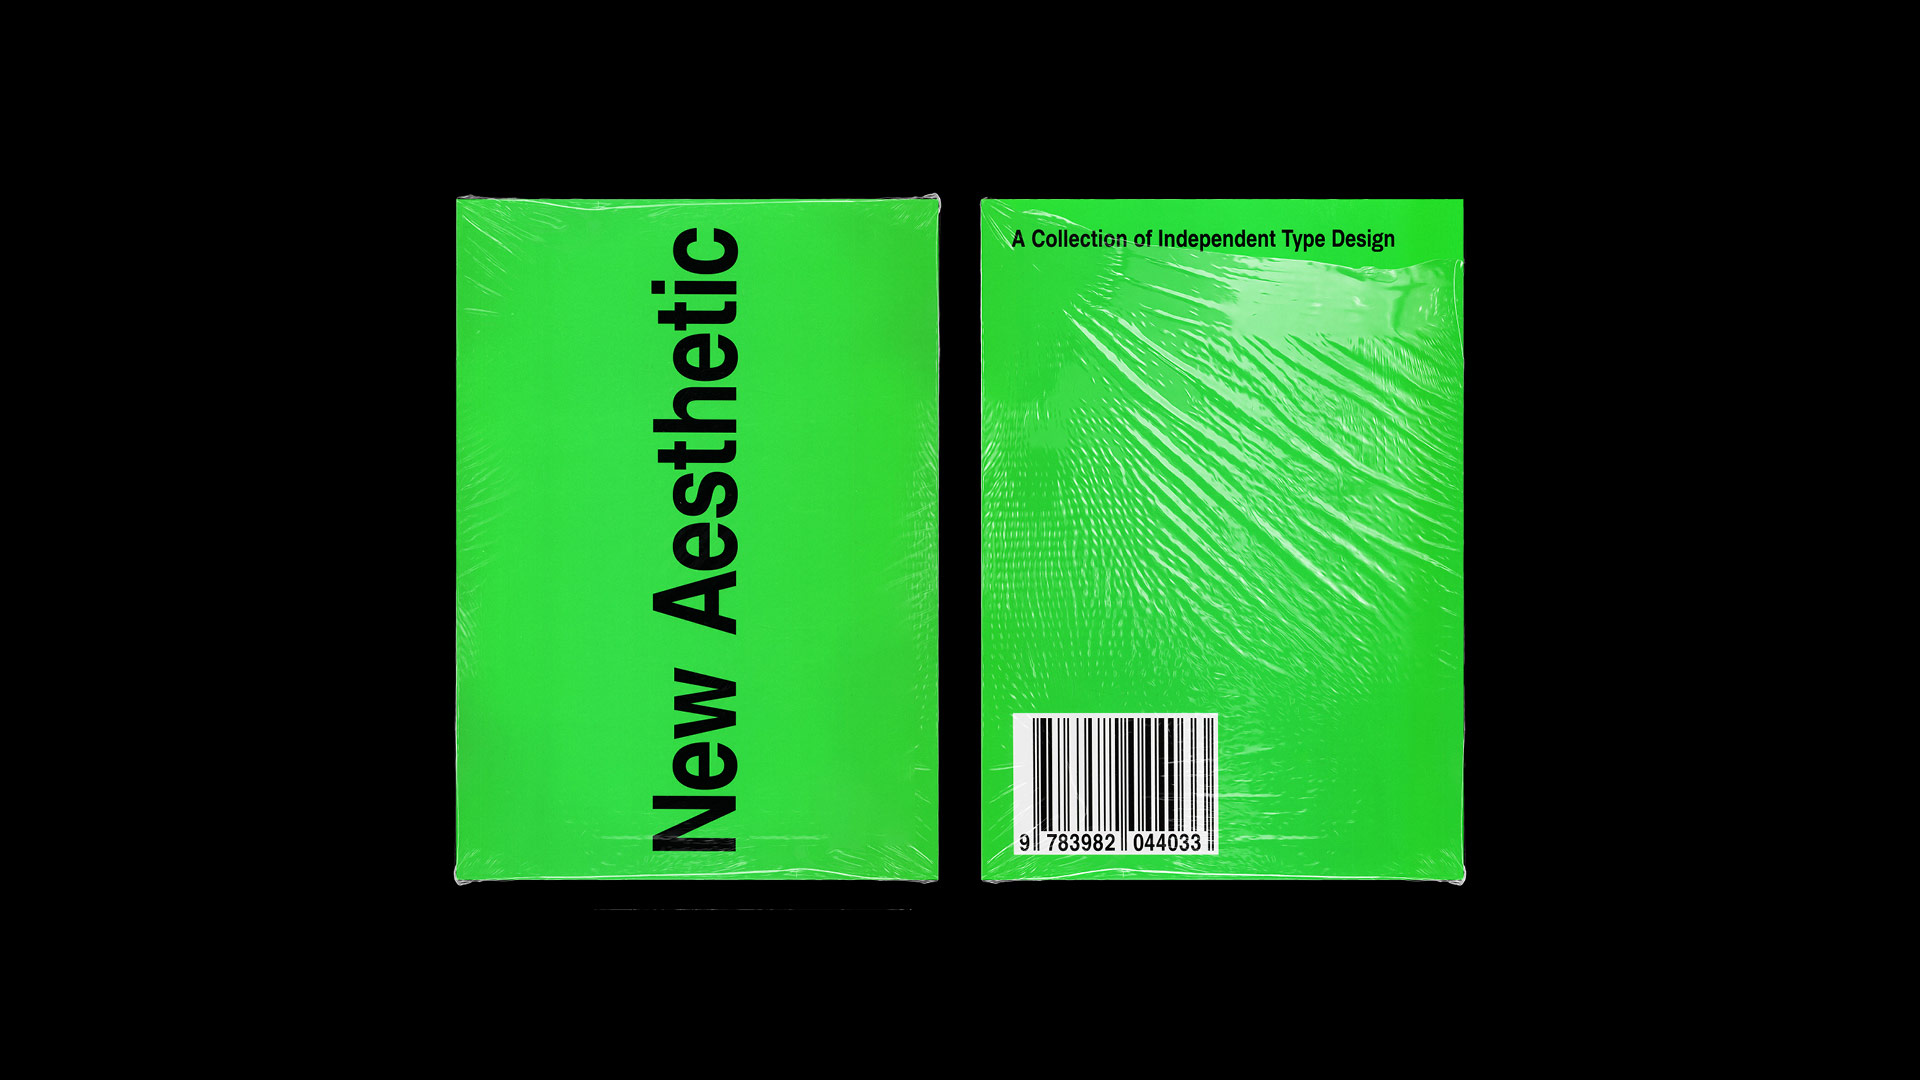 01 collide24 New Aesthetic 2 - Sophia Brinkgerd and Leonhard Laupichler celebrate the release of New Aesthetic 2, this time in collaboration with publishing house Sorry Press